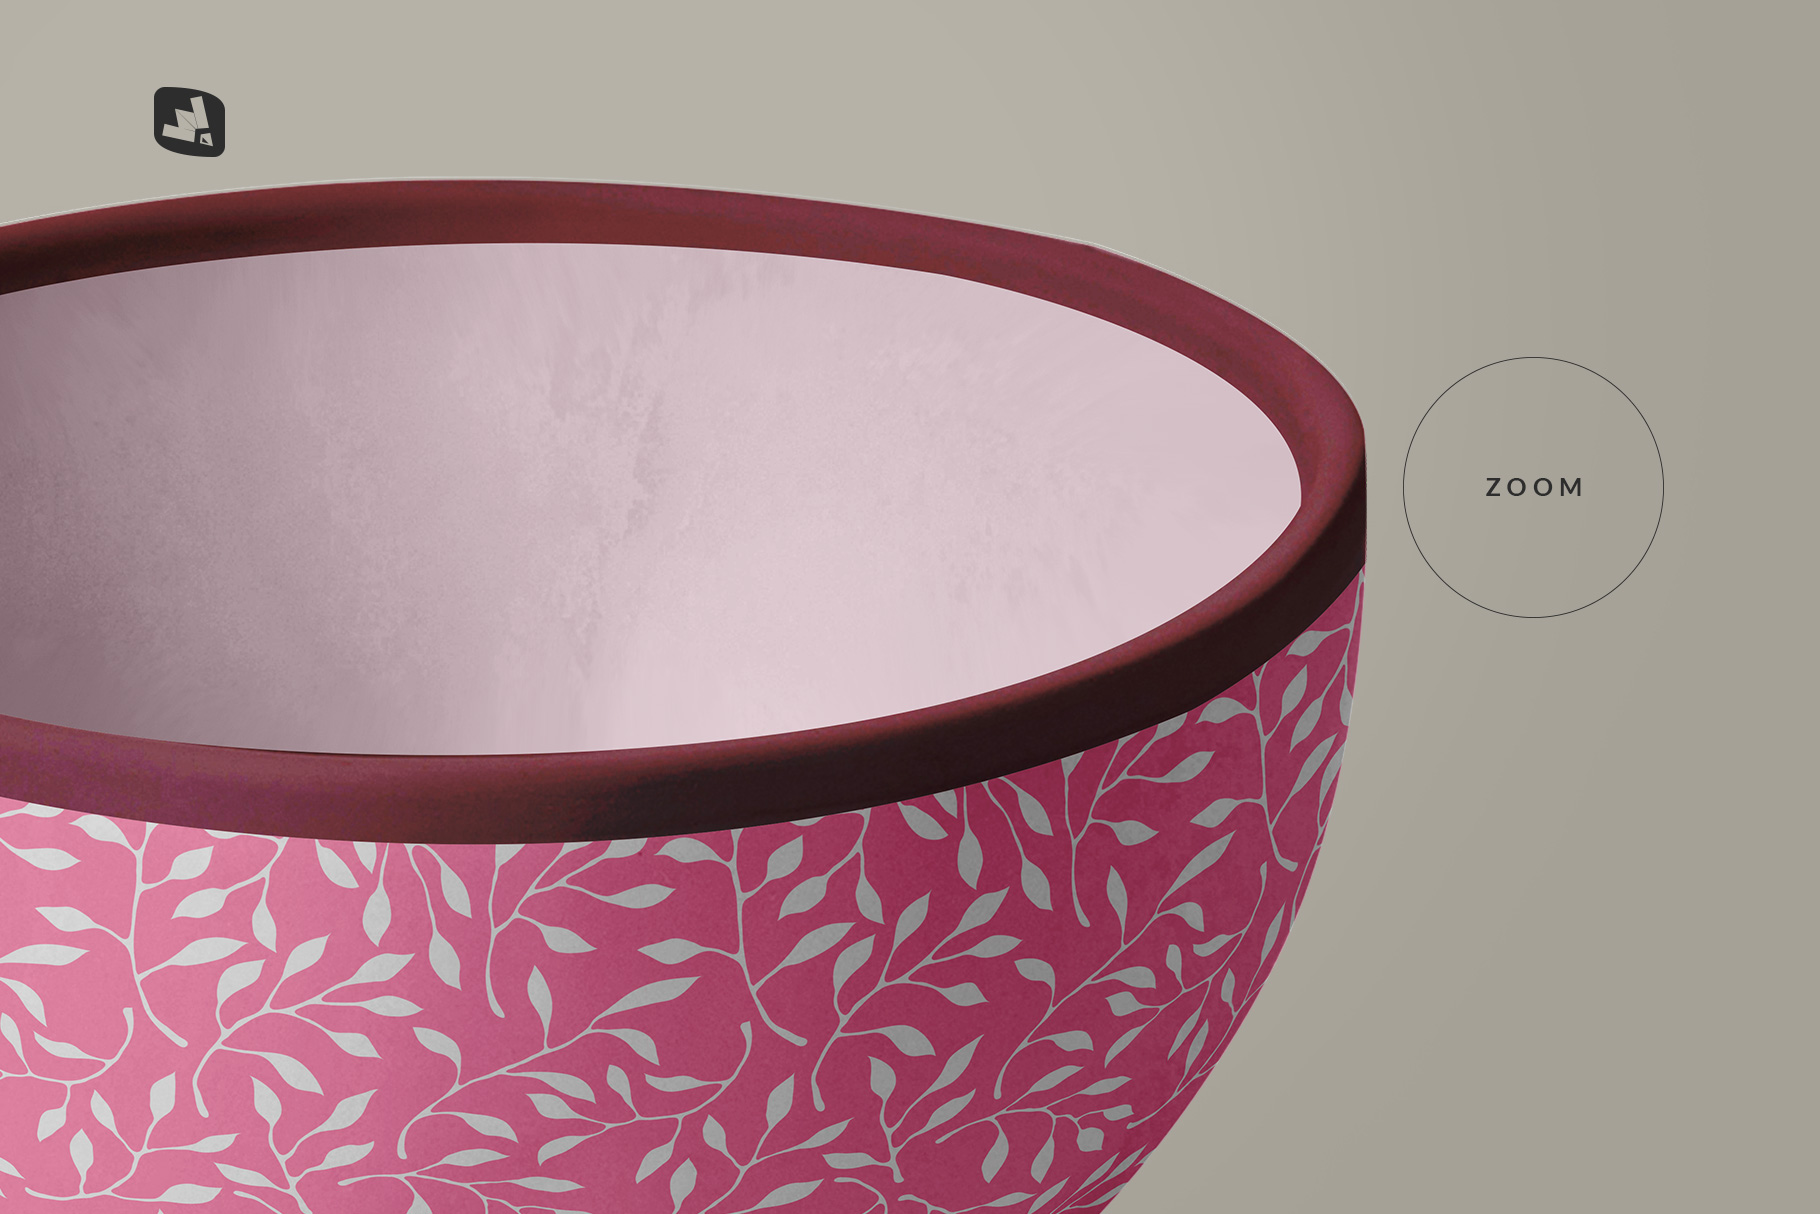 zoomed in image of the front view bowl mockup vol.2